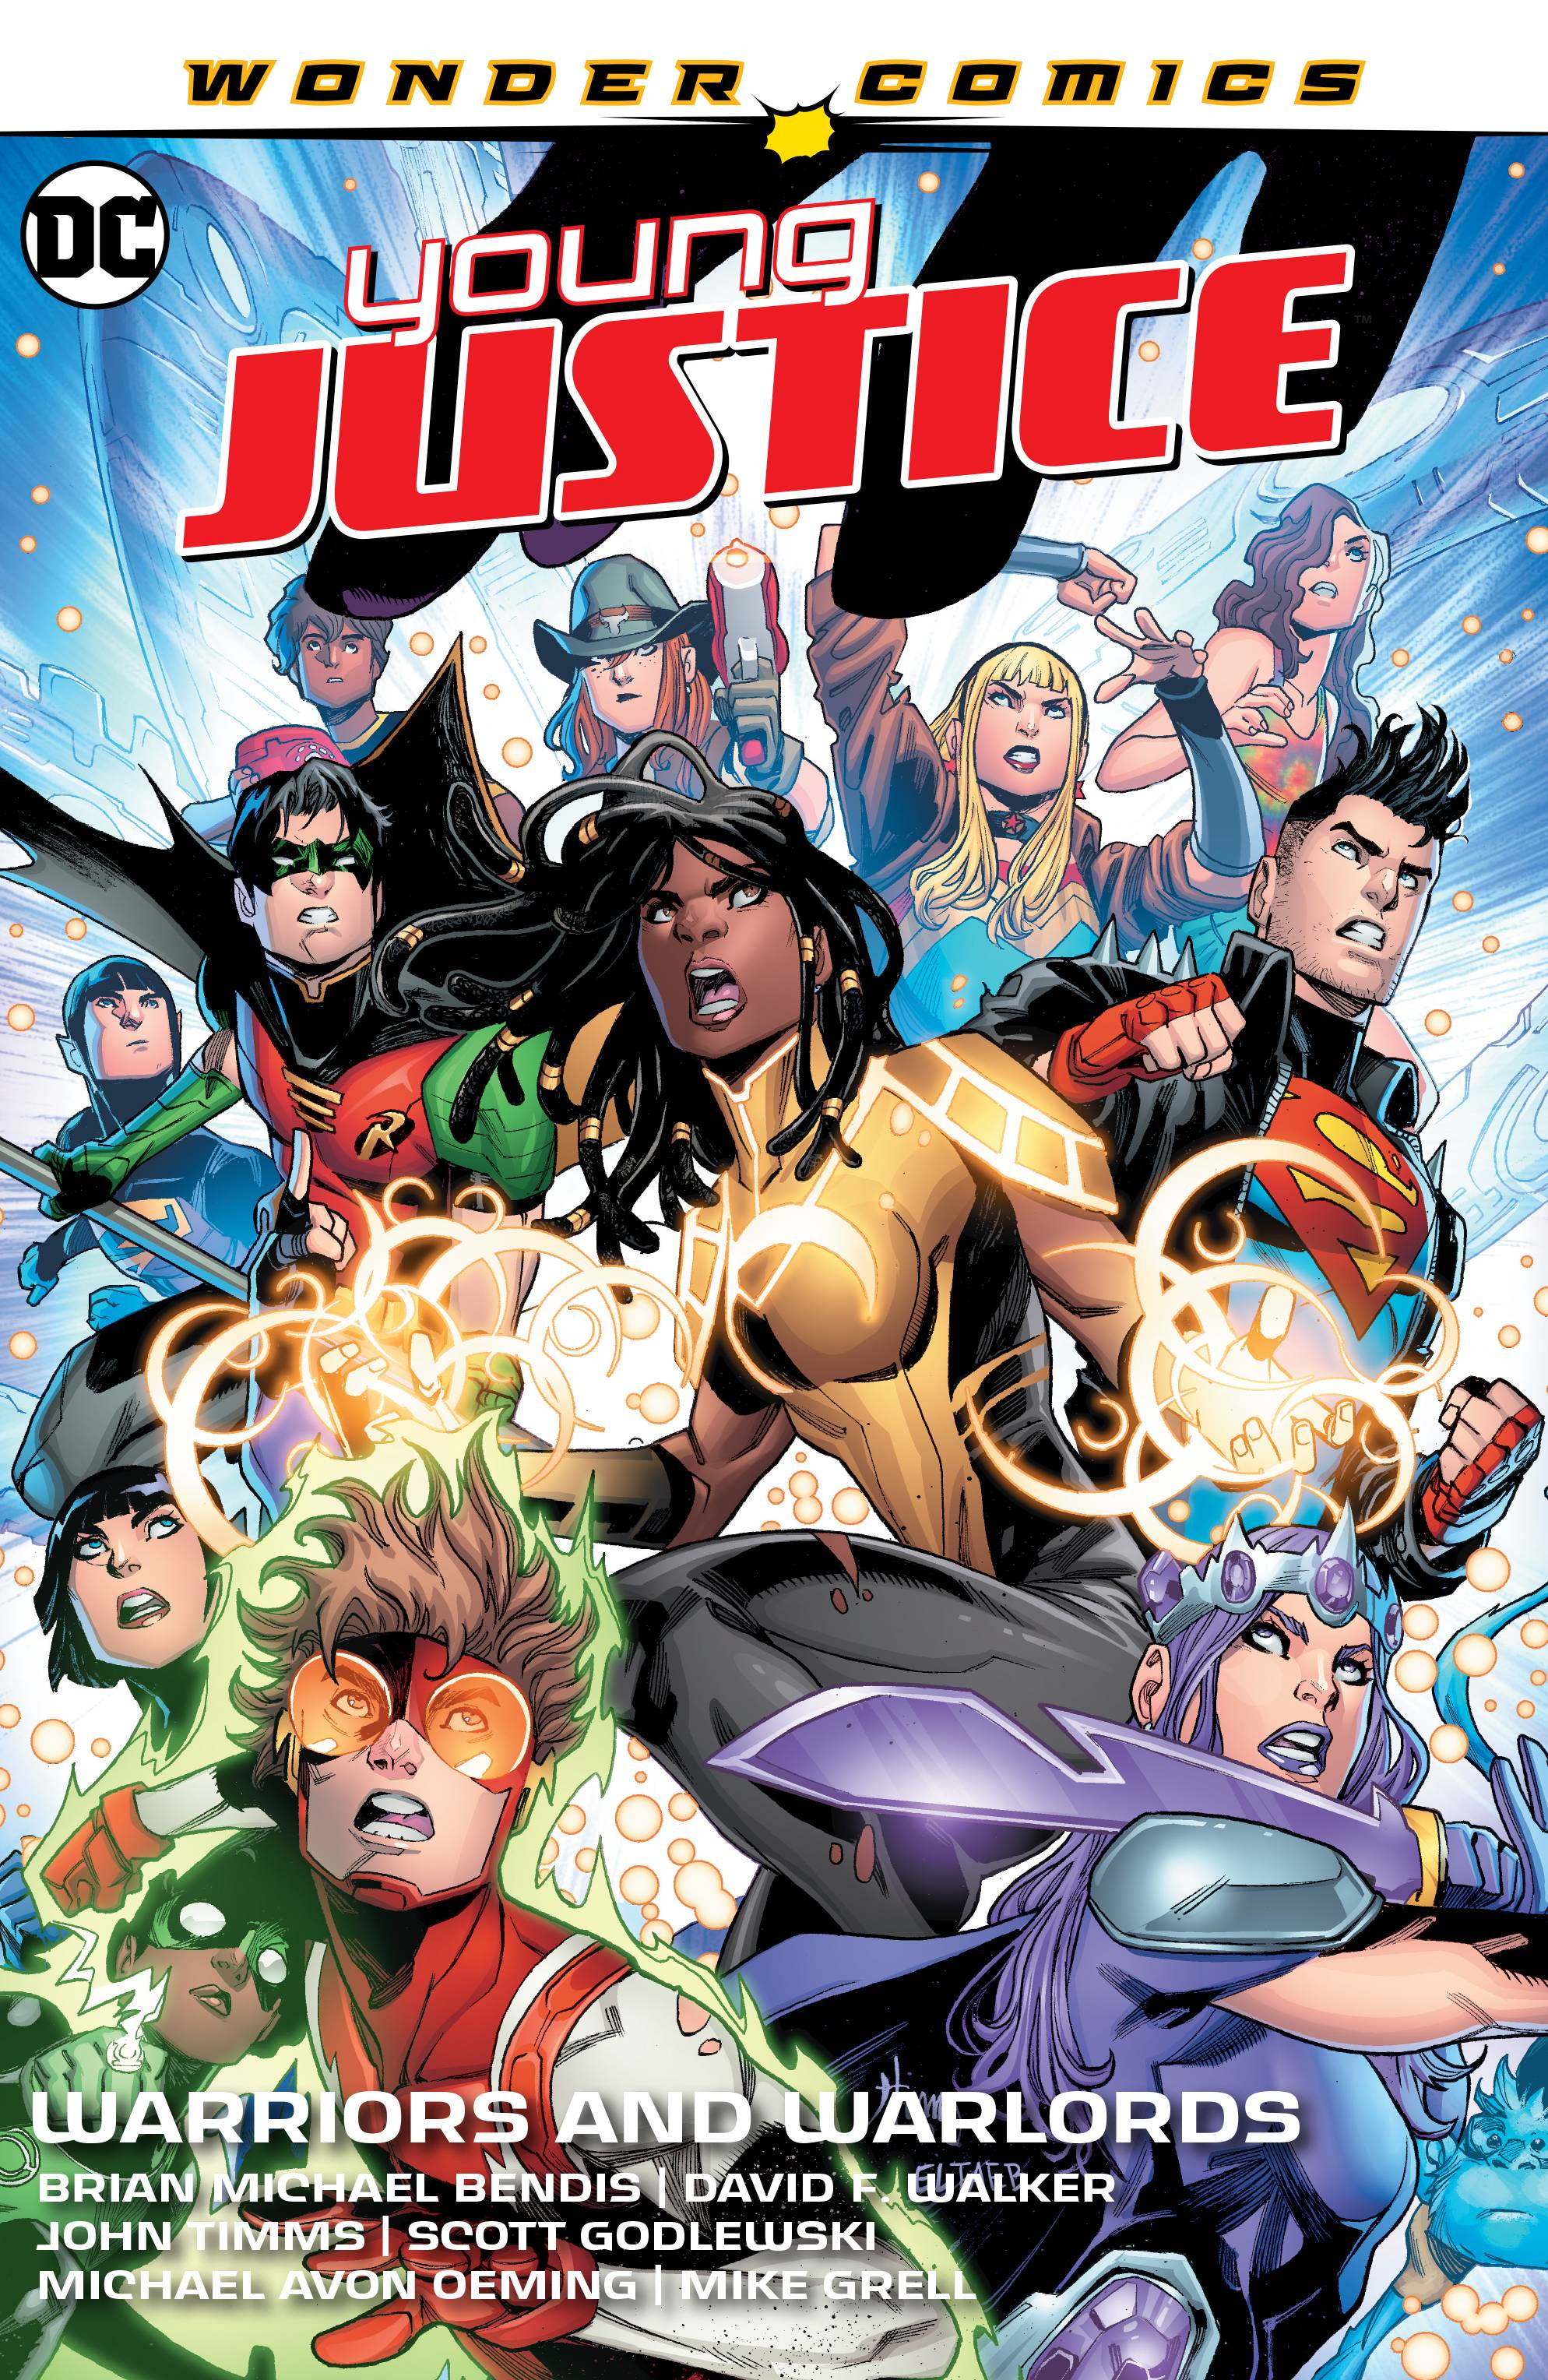 YOUNG JUSTICE TP VOL 03 WARRIORS AND WARLORDS | Phoenix Comics and Games